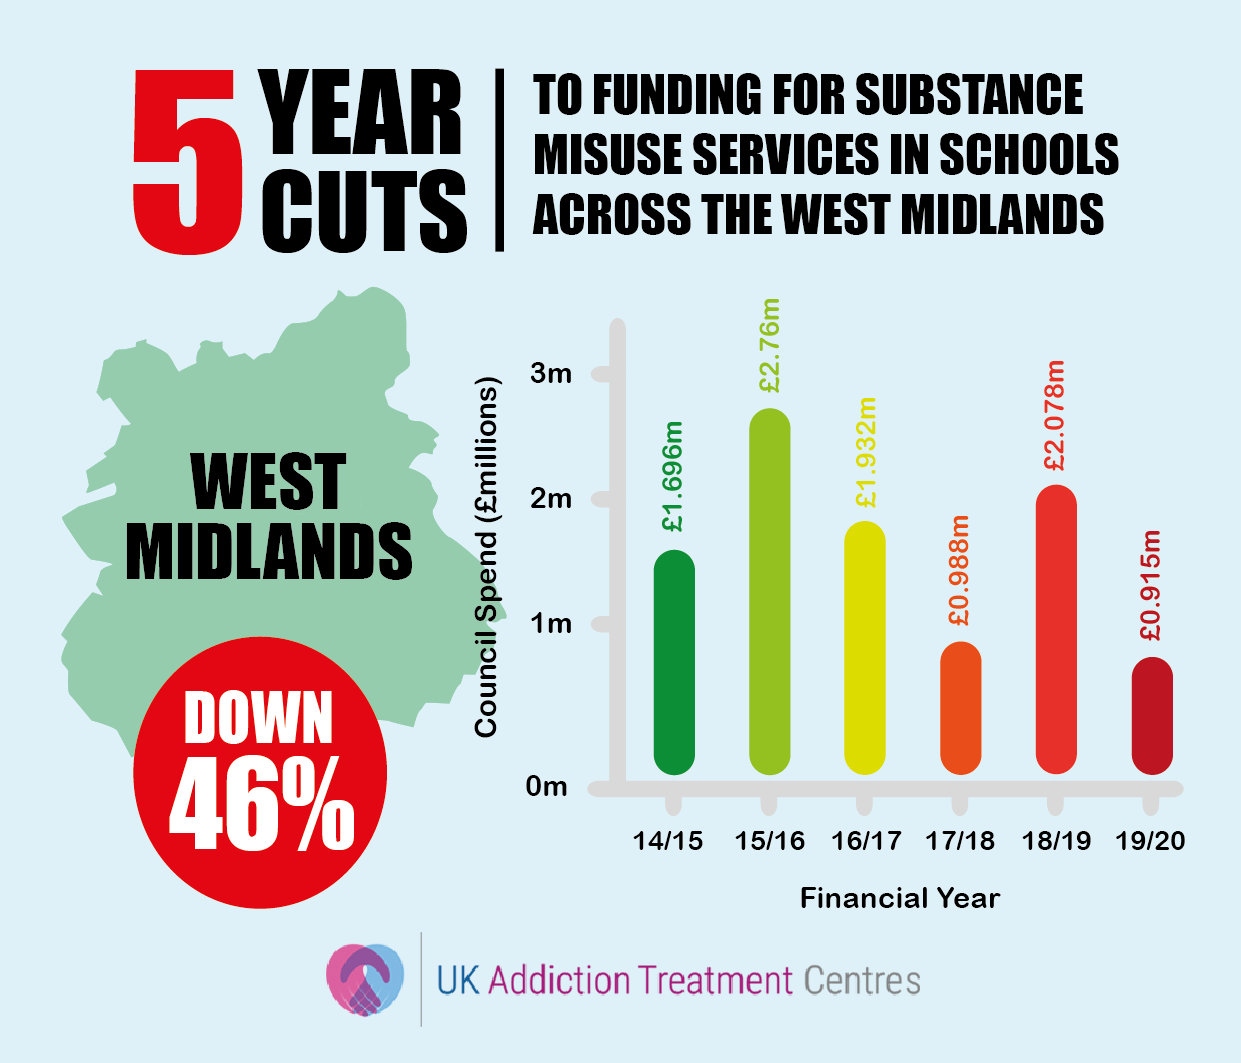 west midlands addiction cuts infographic